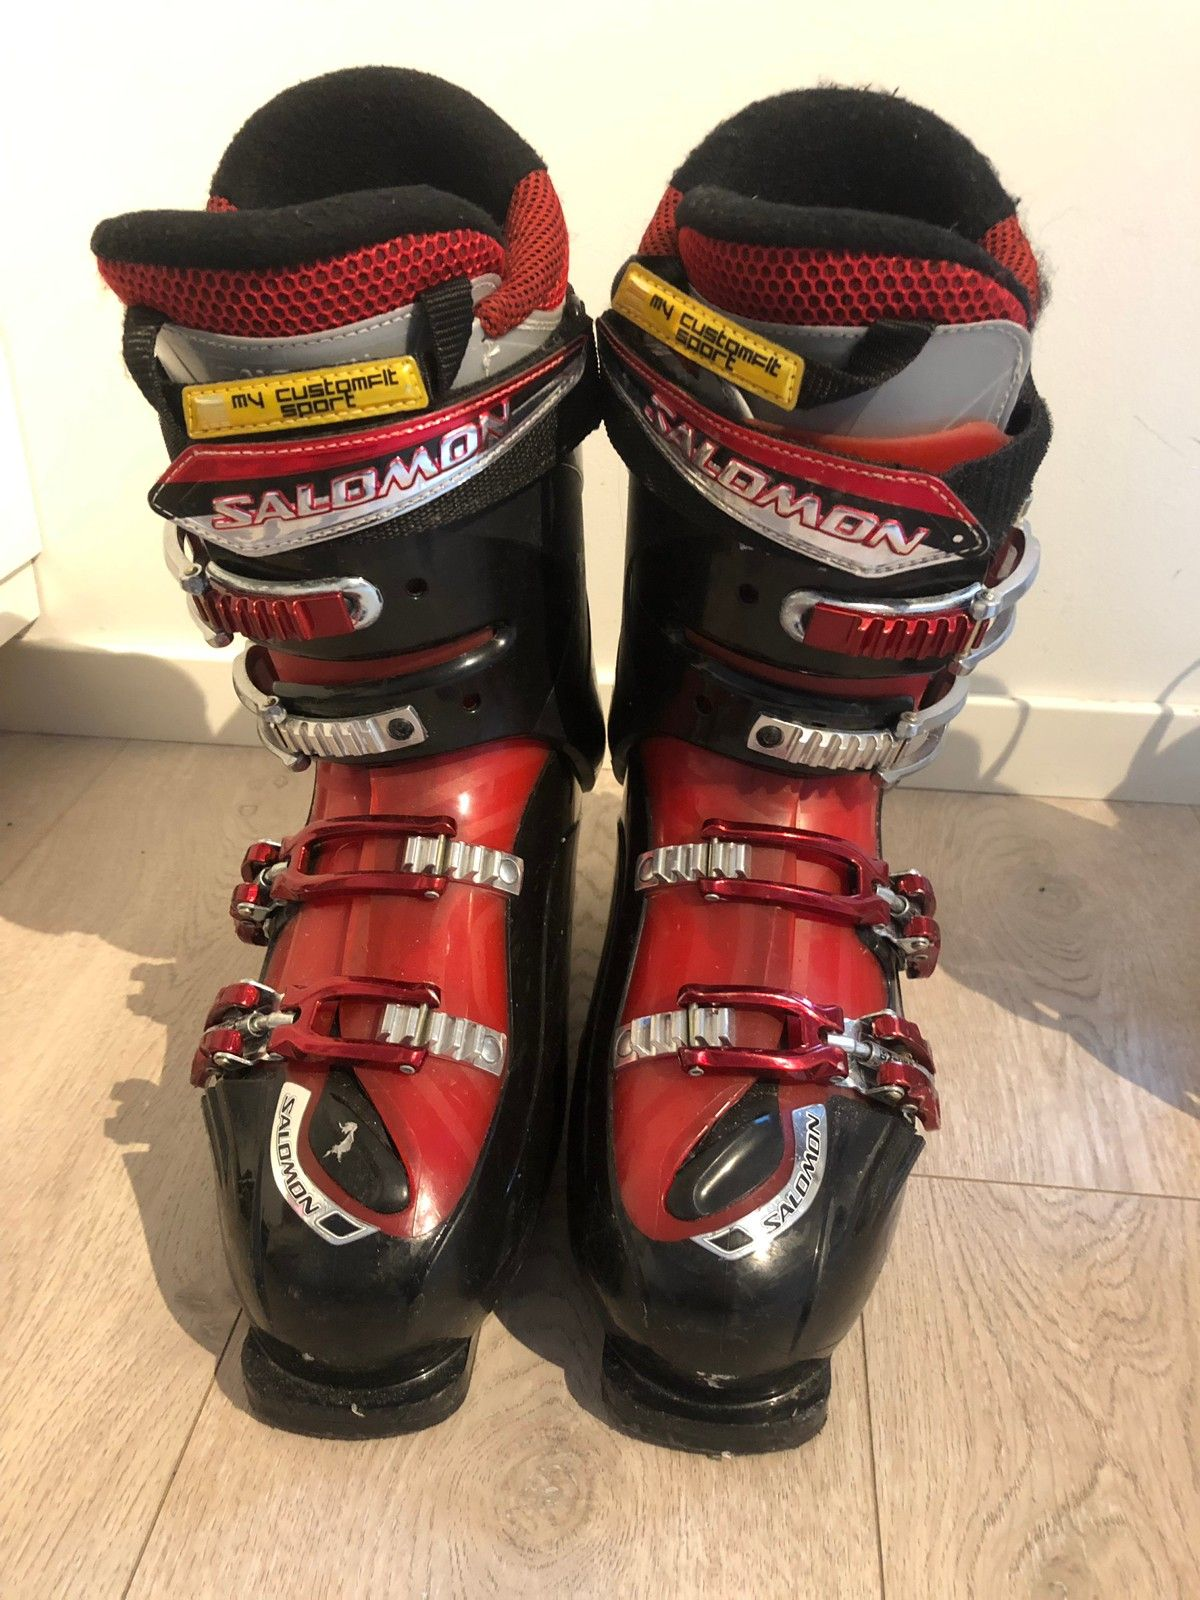 Salomon Mission RS7 Alpinstøvler str. 43 RESERVERT UT